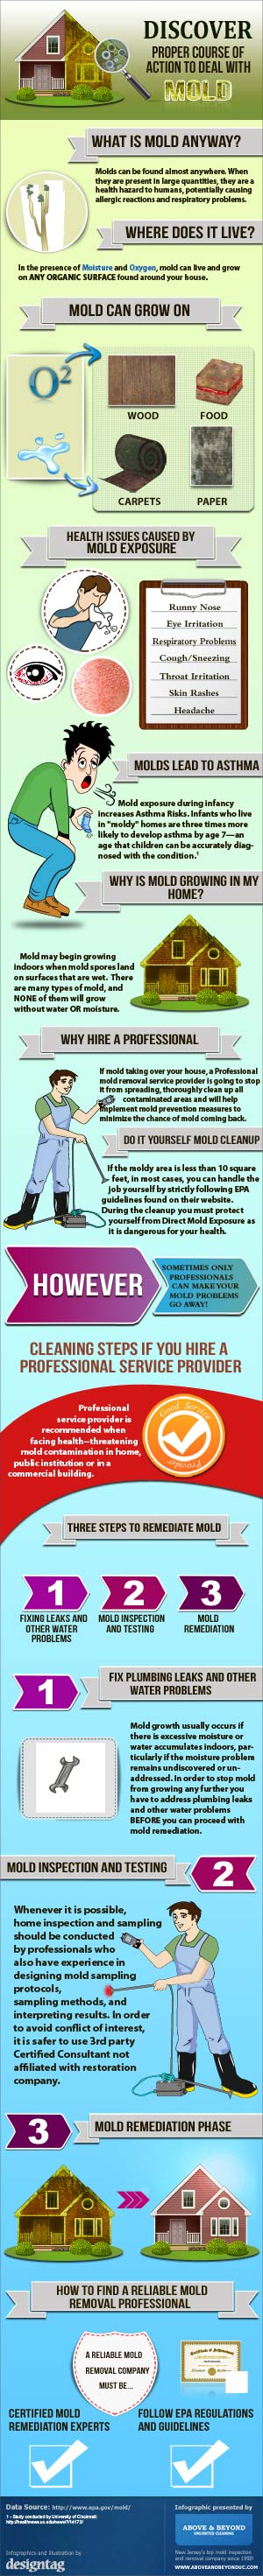 Inforaphic: How to deal with household mold